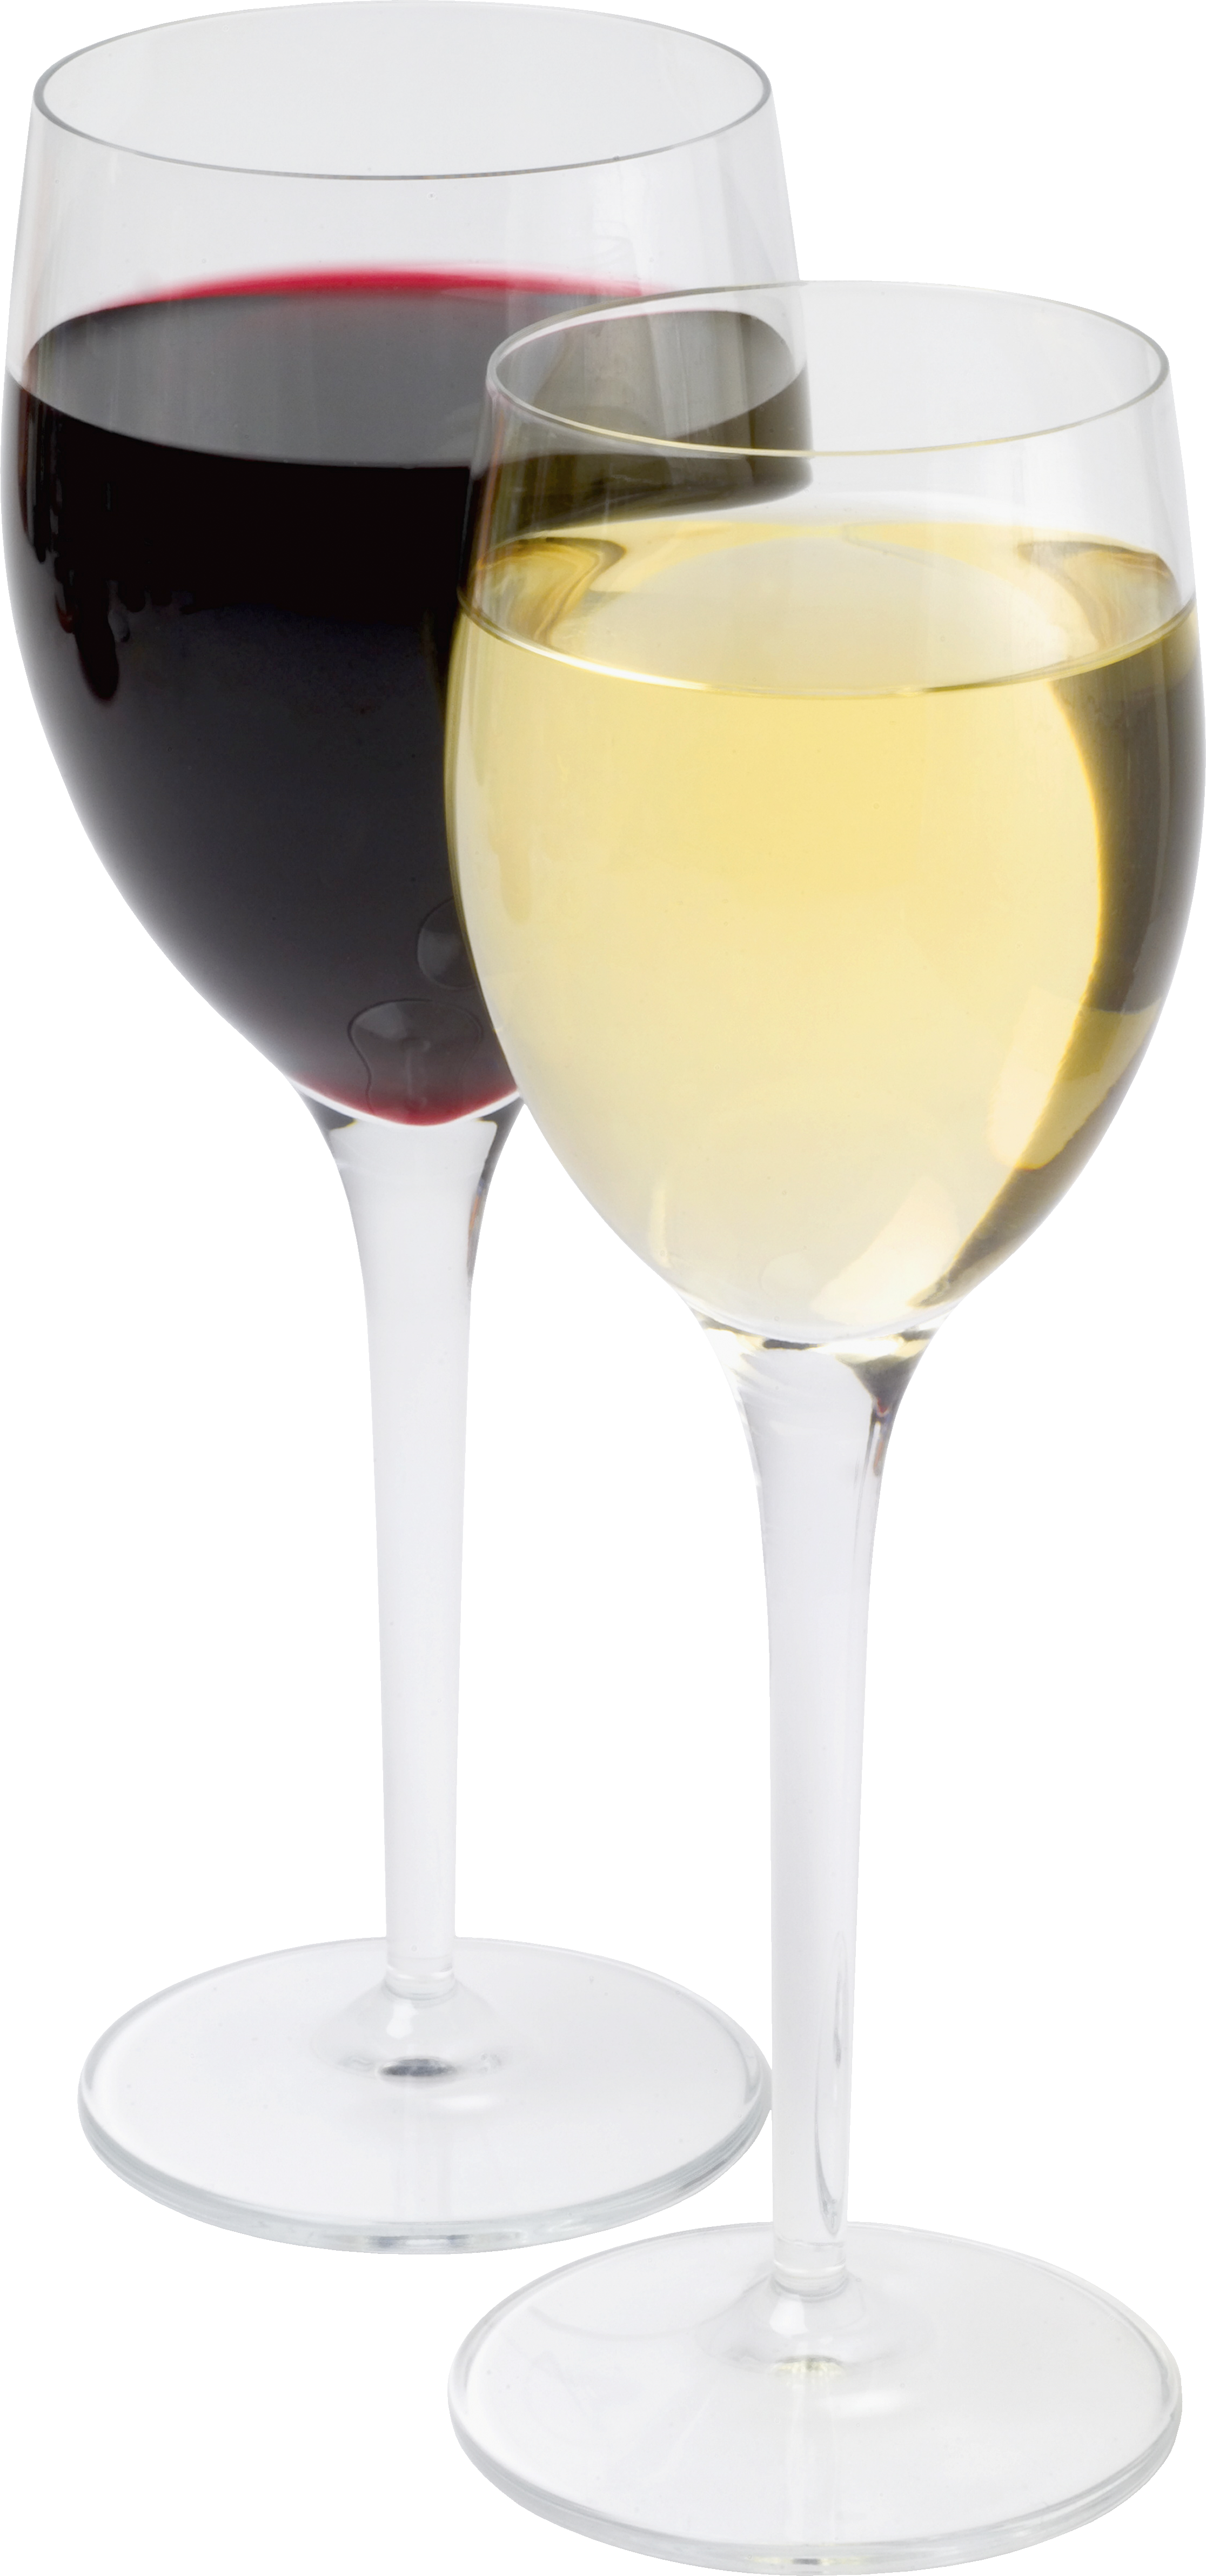 Drink glasses png. Glass images free wineglass